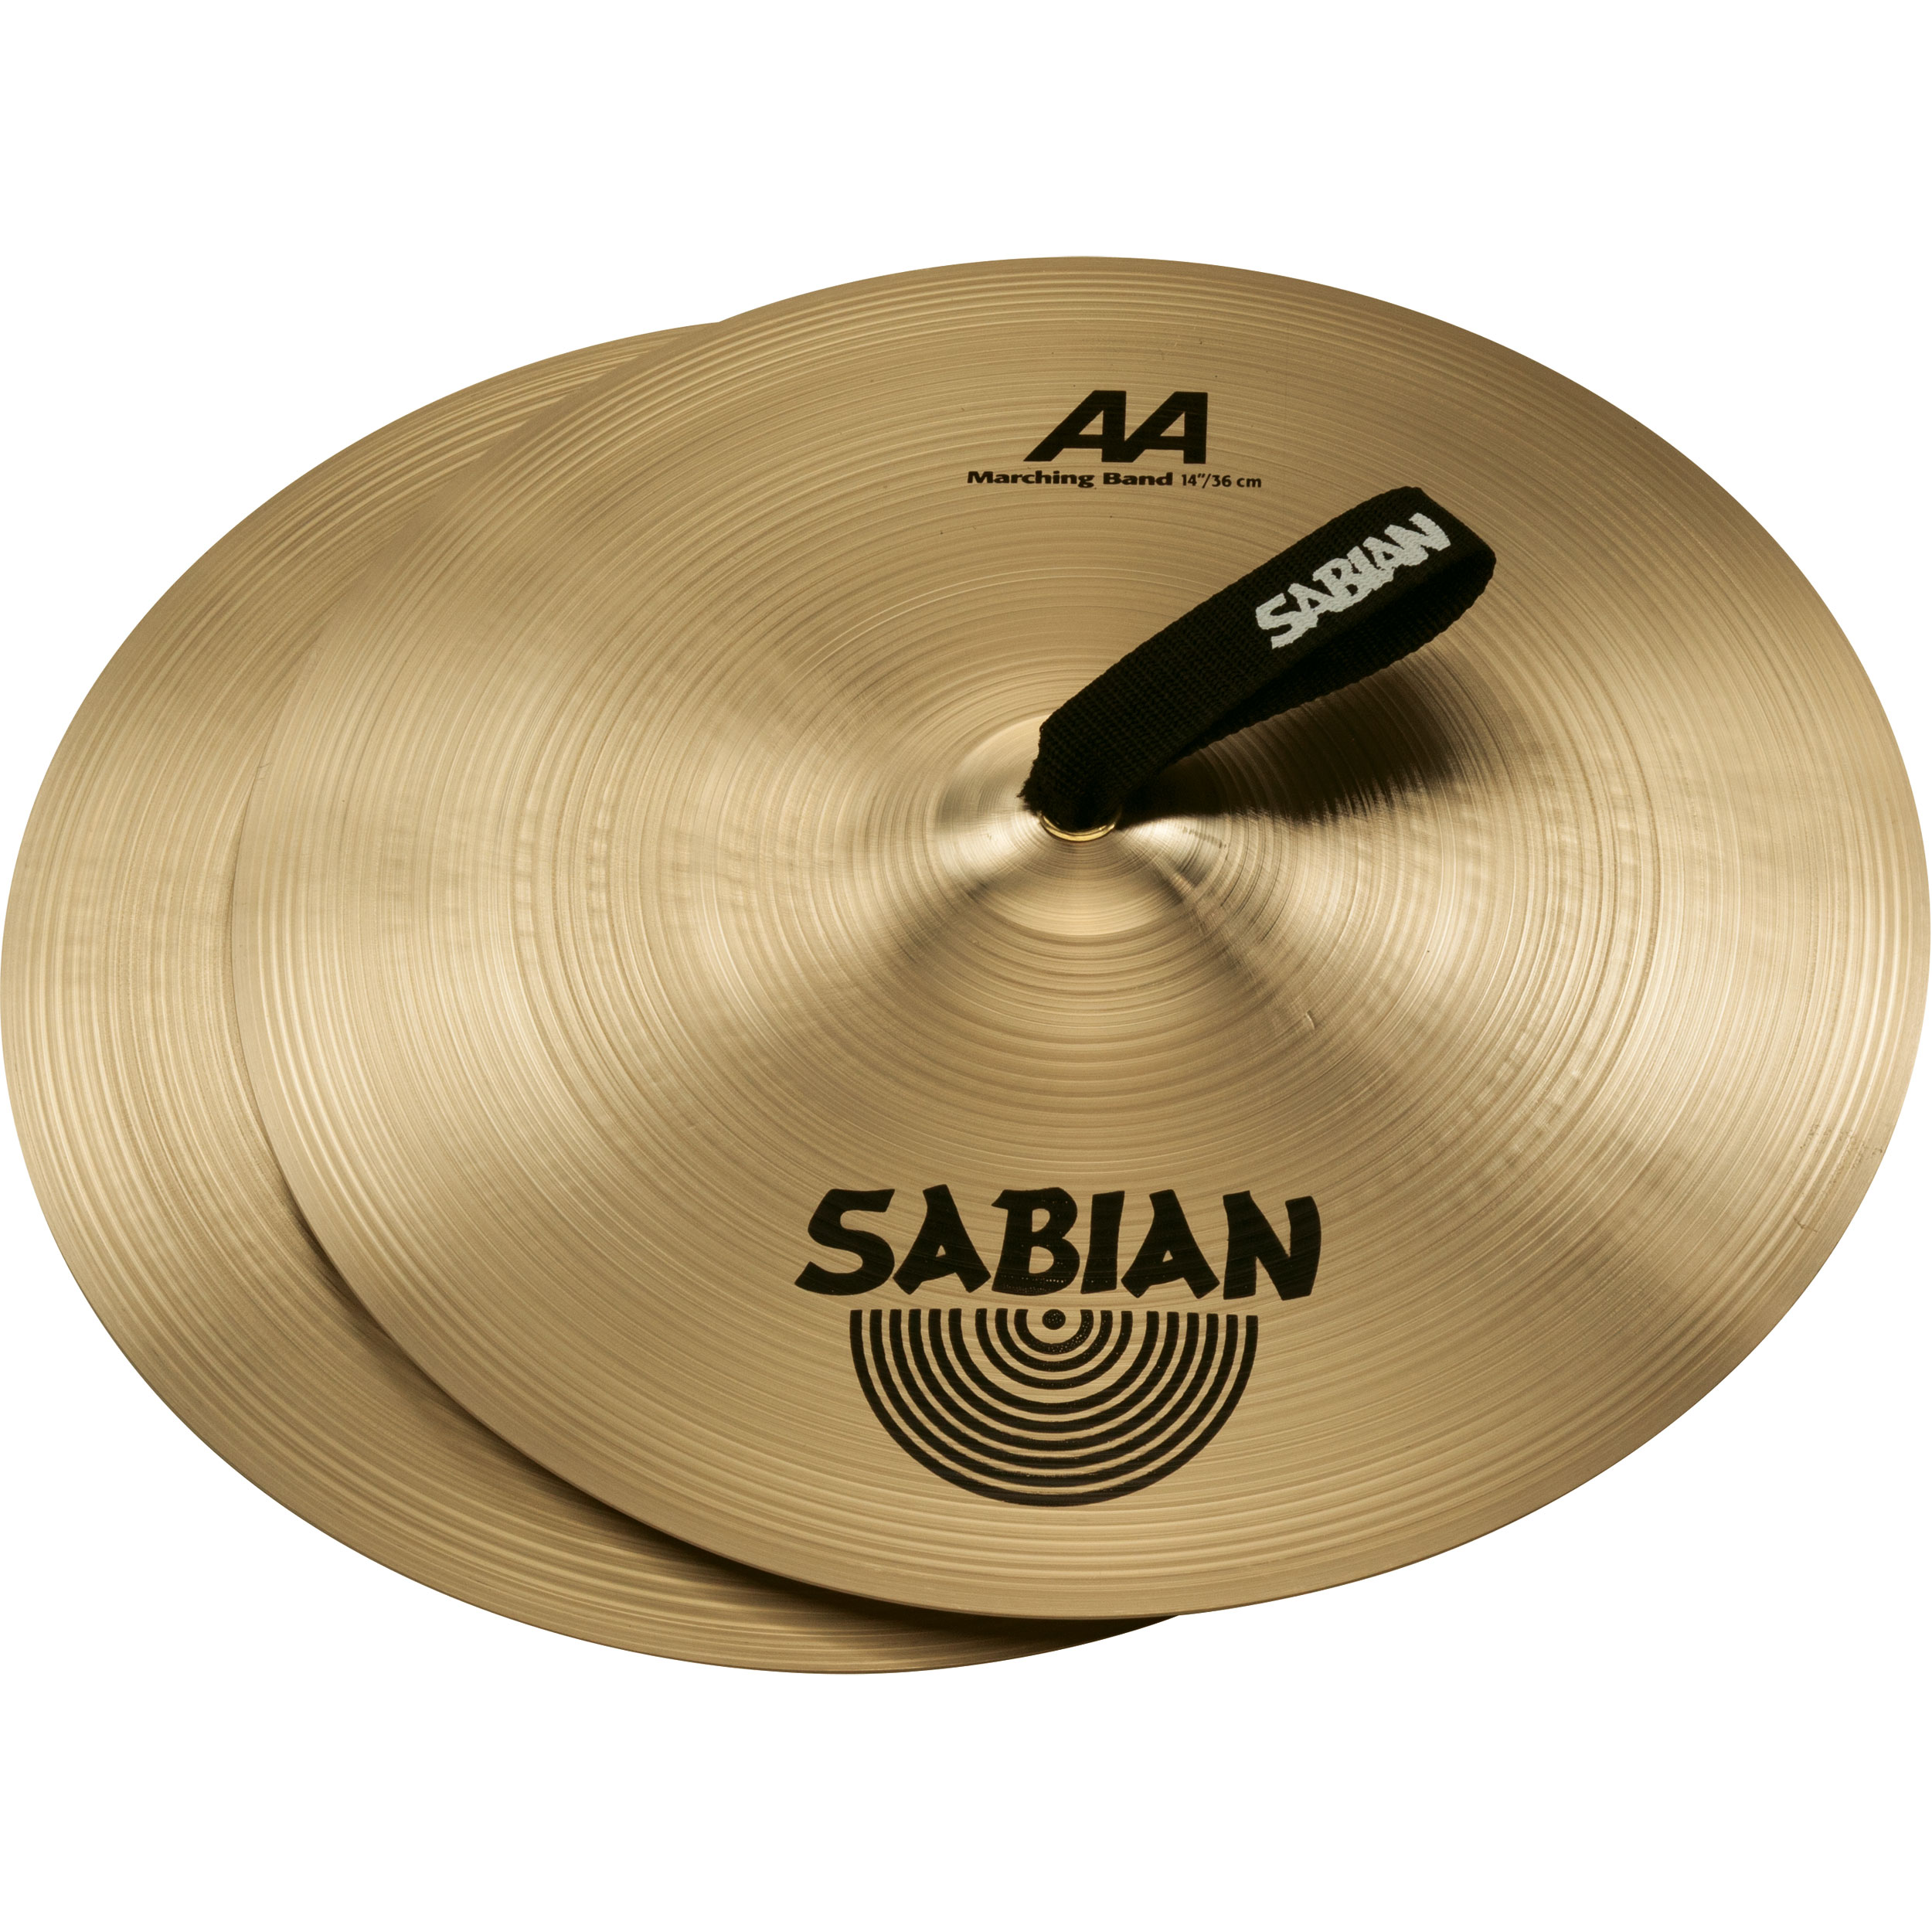 "Sabian 14"" AA Marching Band Hand Cymbal Pair"